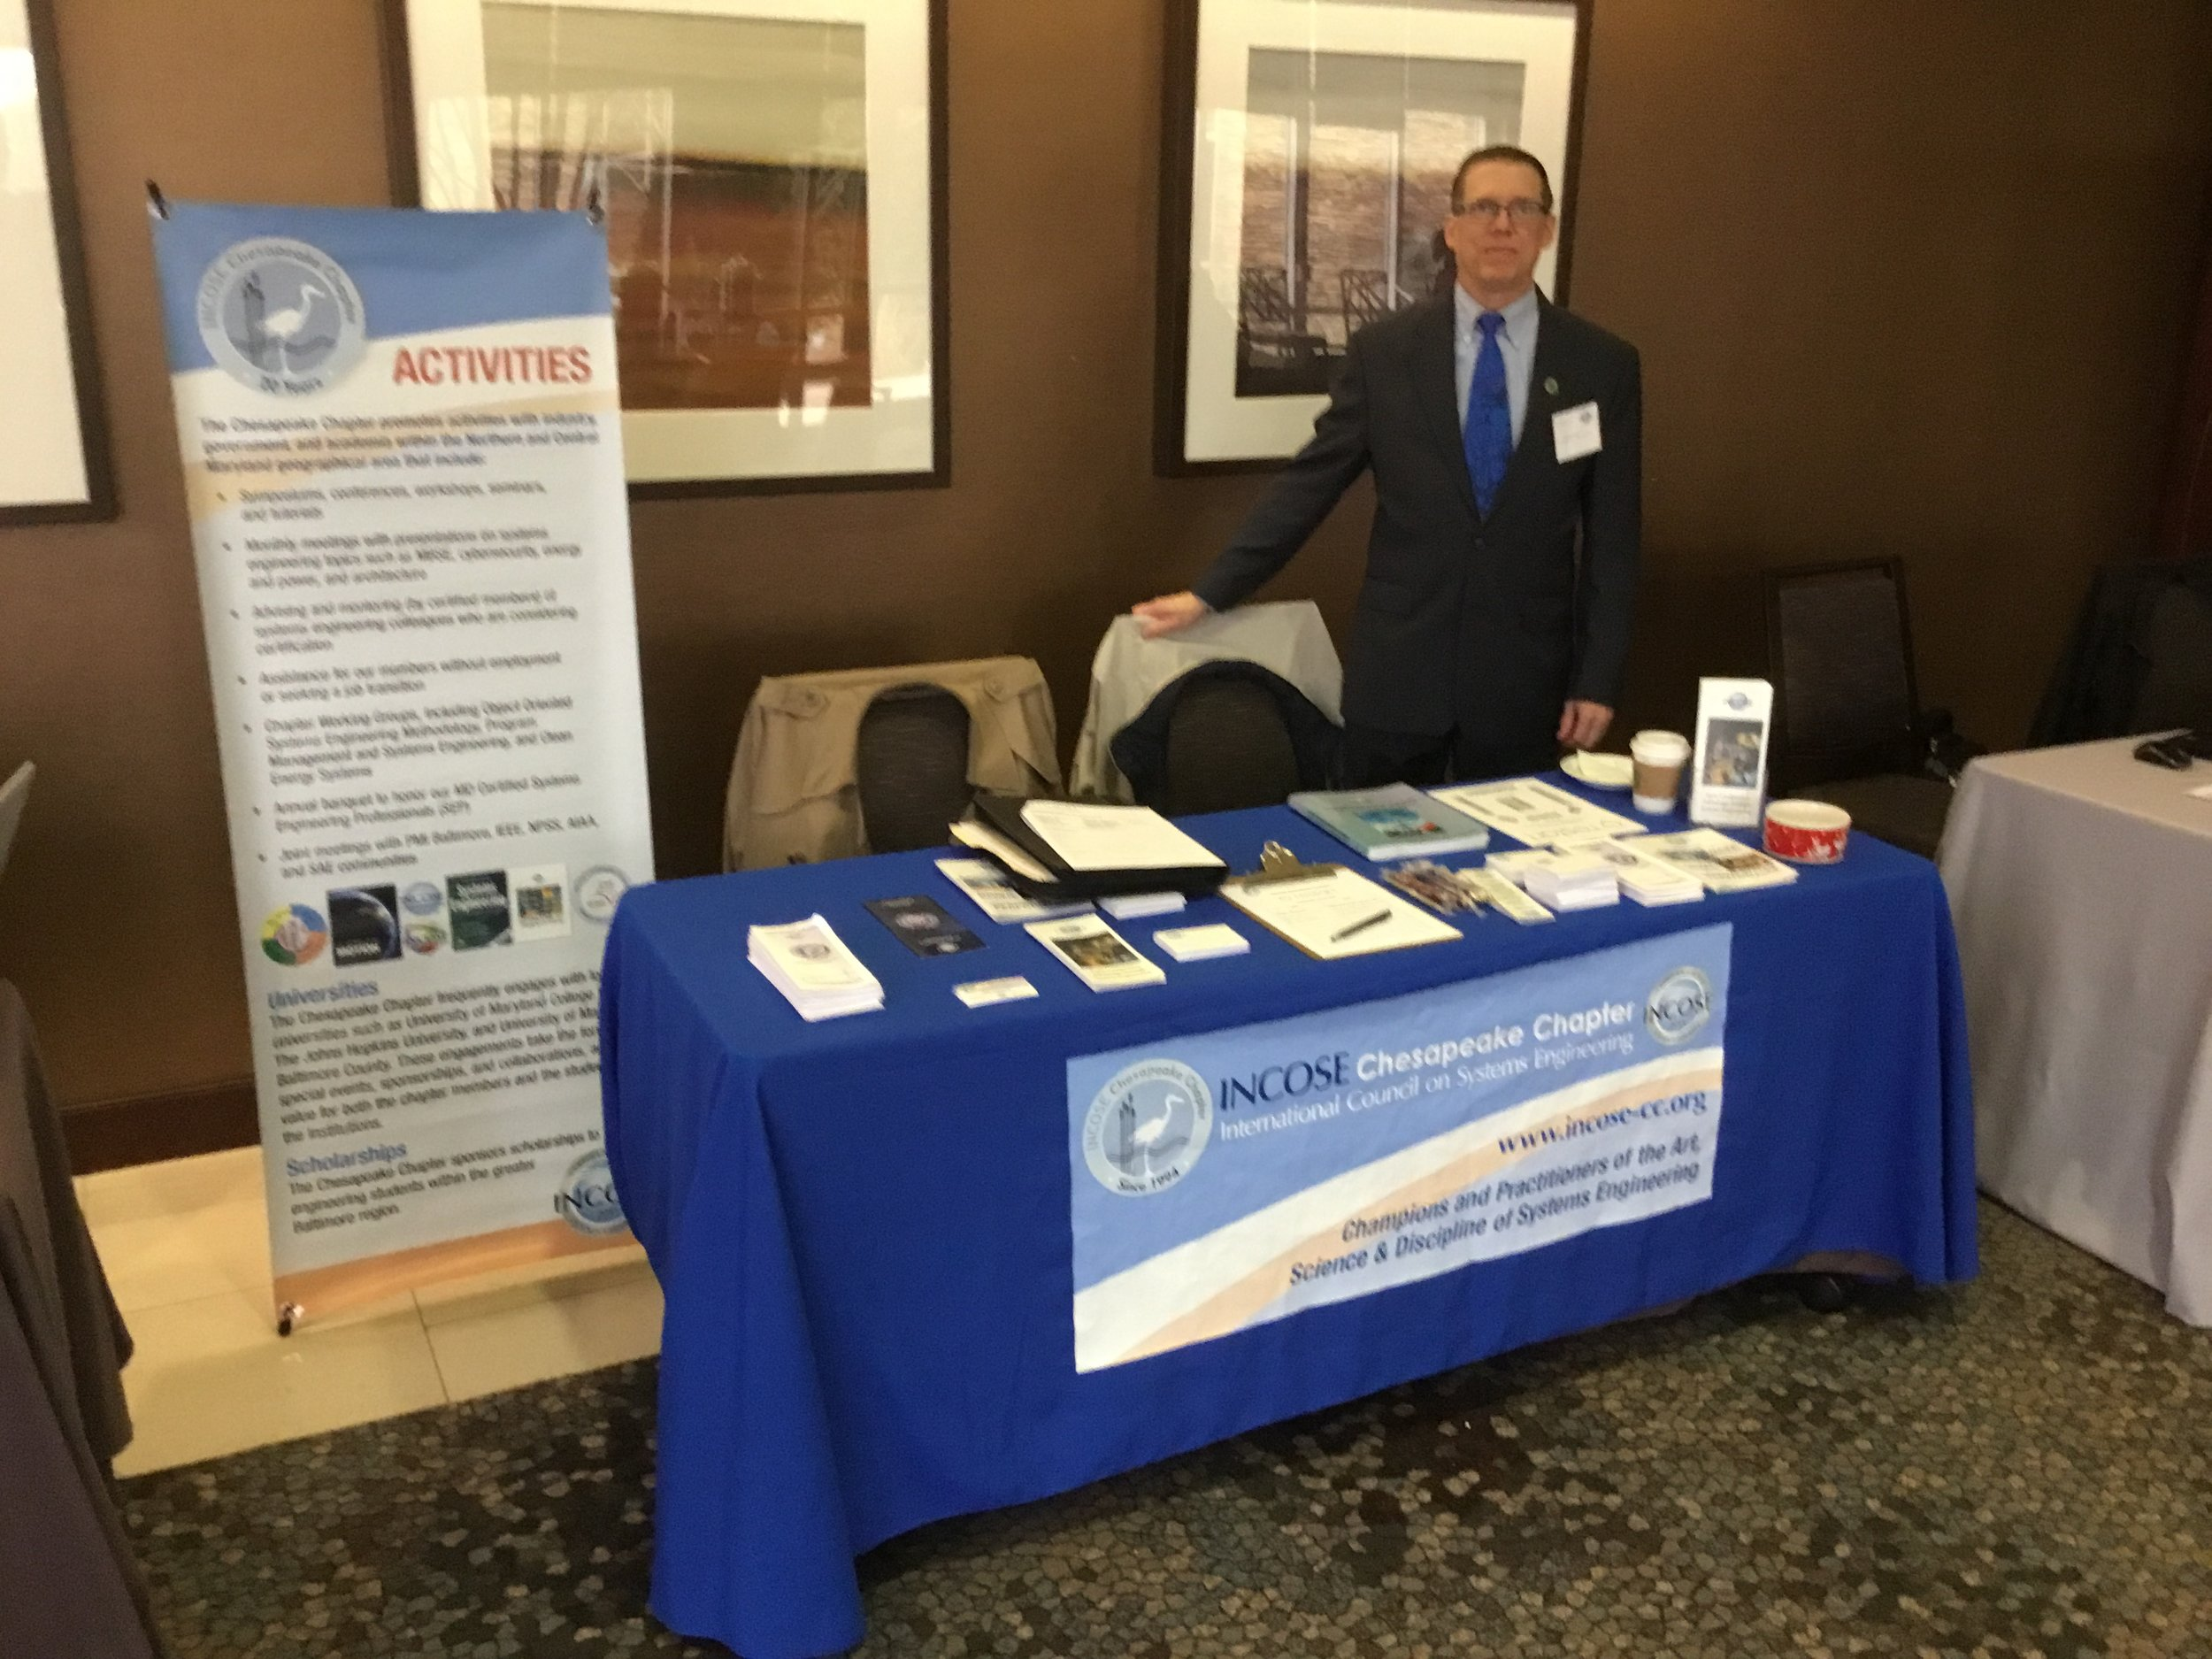 Mark Kaczmarek at the January 29, 2018 reStart job fair